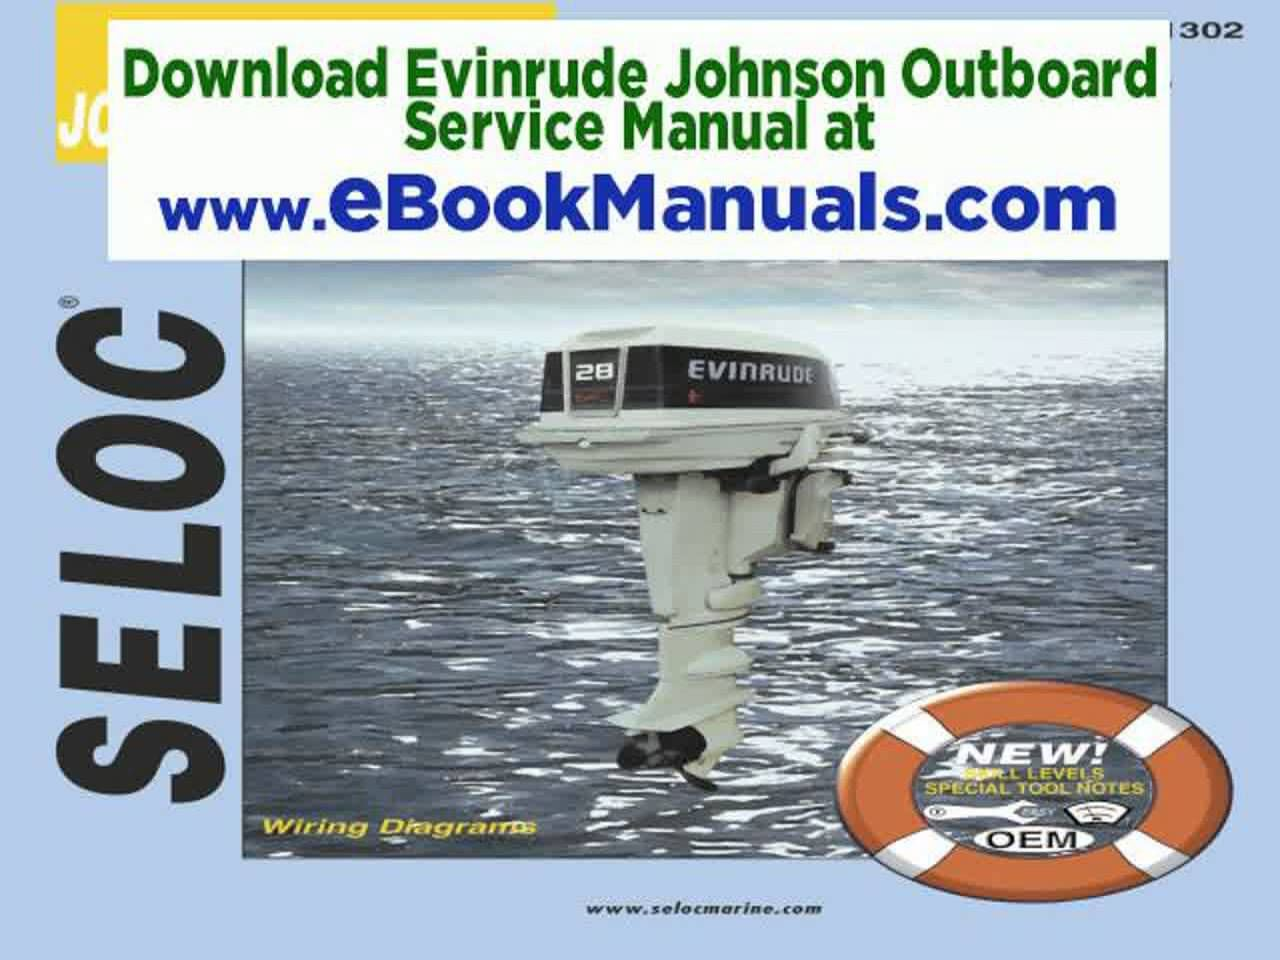 1990 2001 johnson evinrude outboard service manual pdf online 2014 1990 2001 johnson evinrude outboard service manual pdf online 2014 fandeluxe Gallery